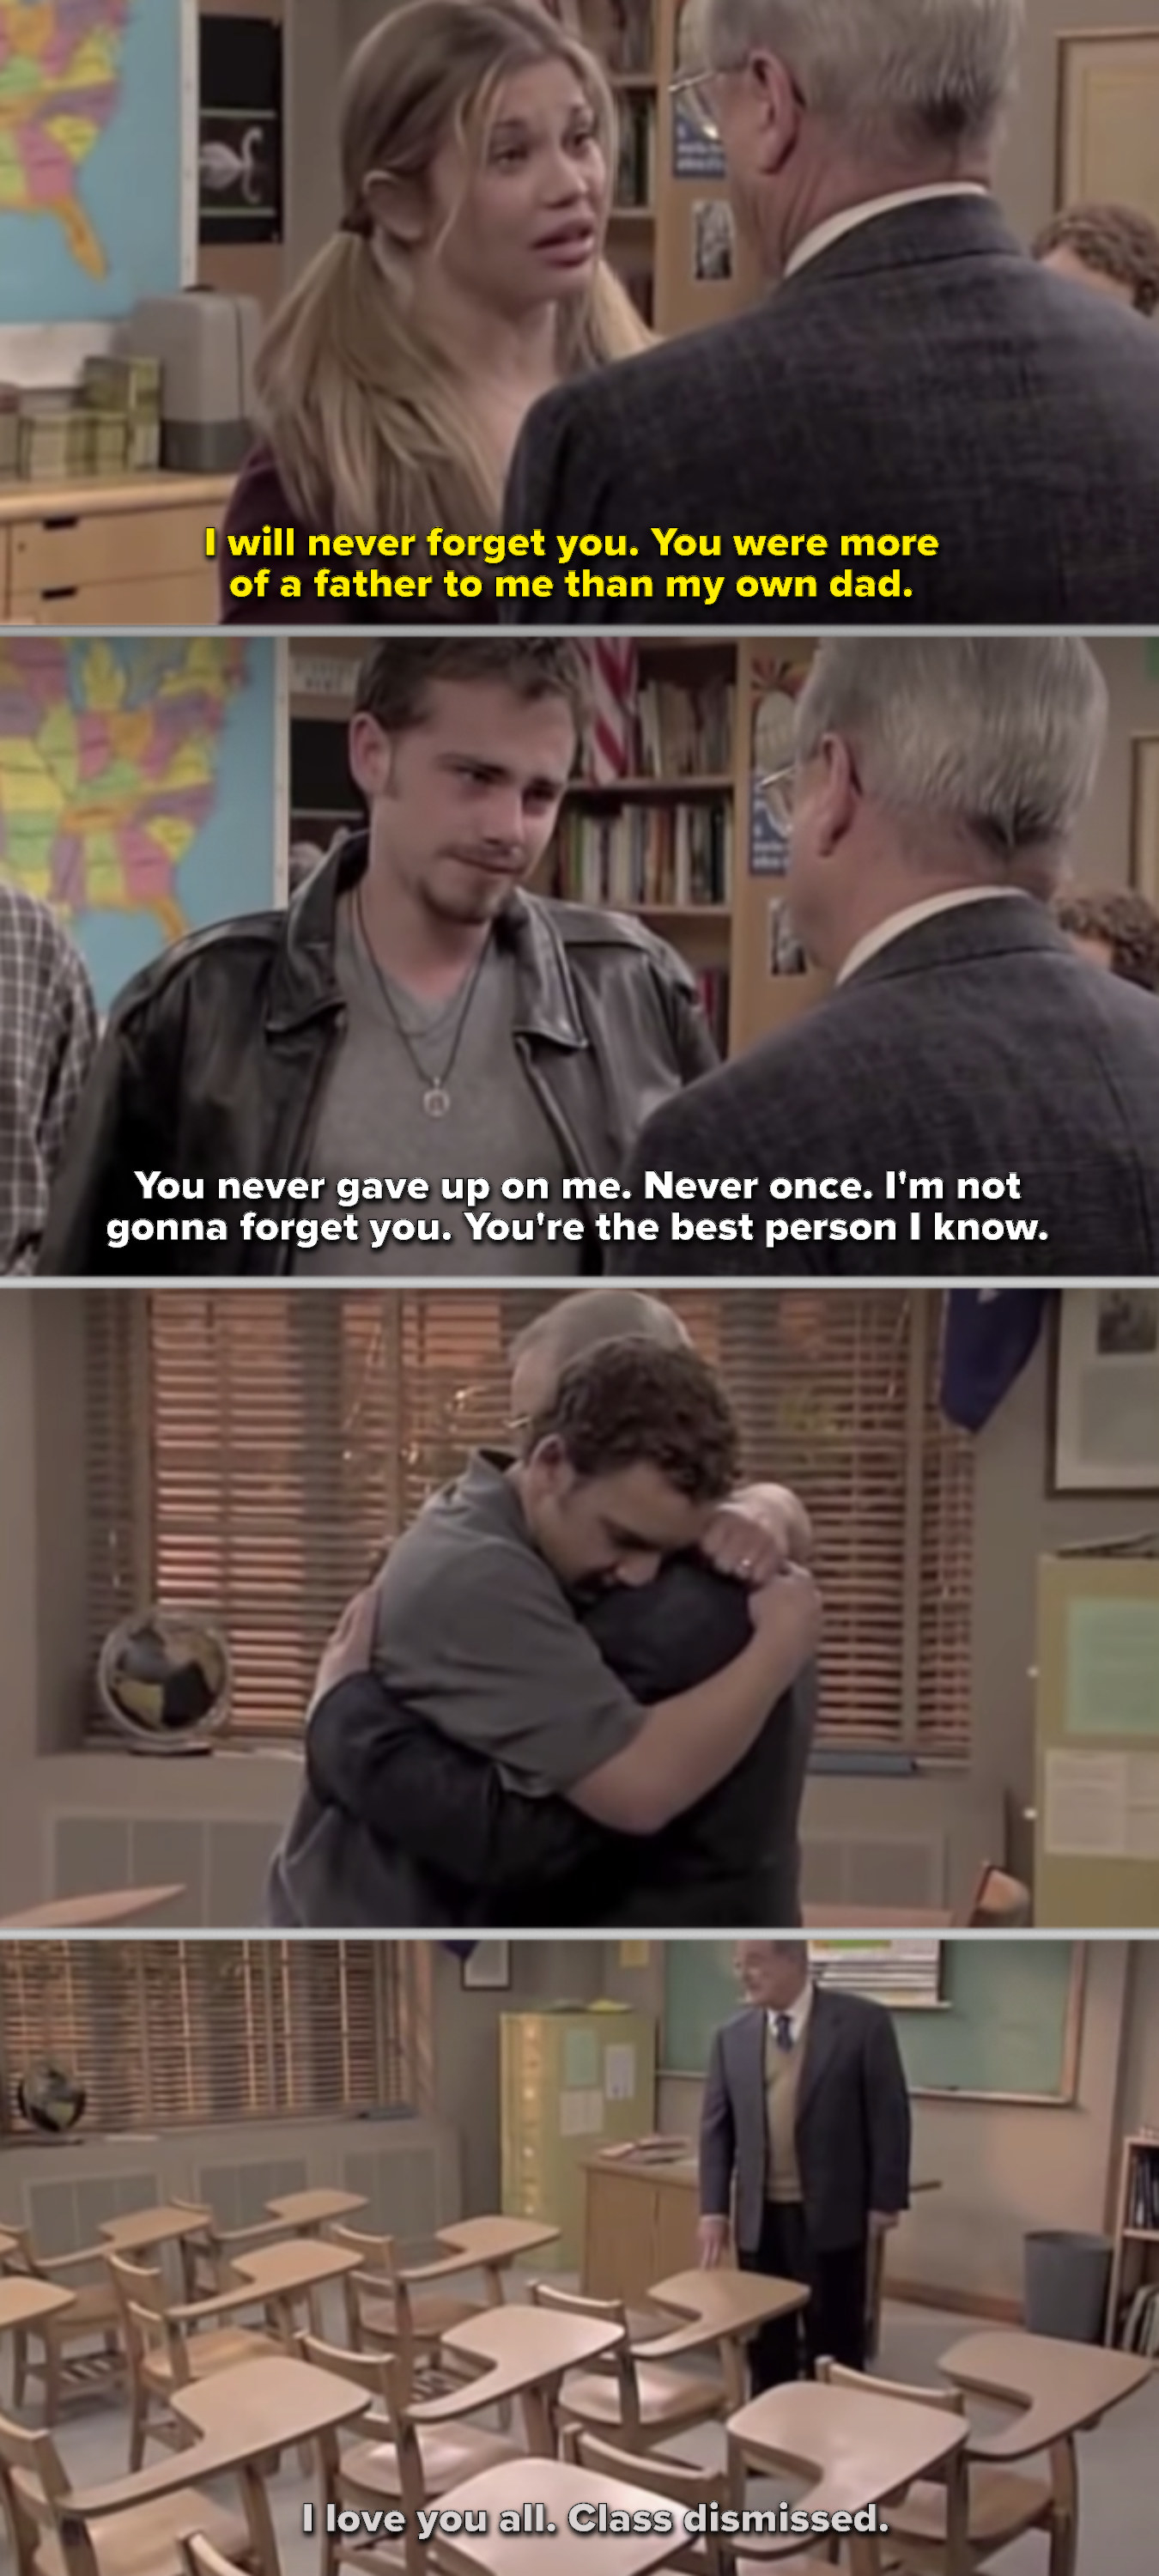 Topanga, Cory, and Shawn saying goodbye to Mr. Feeny, then Mr. Feeny dismissing his classroom one final time